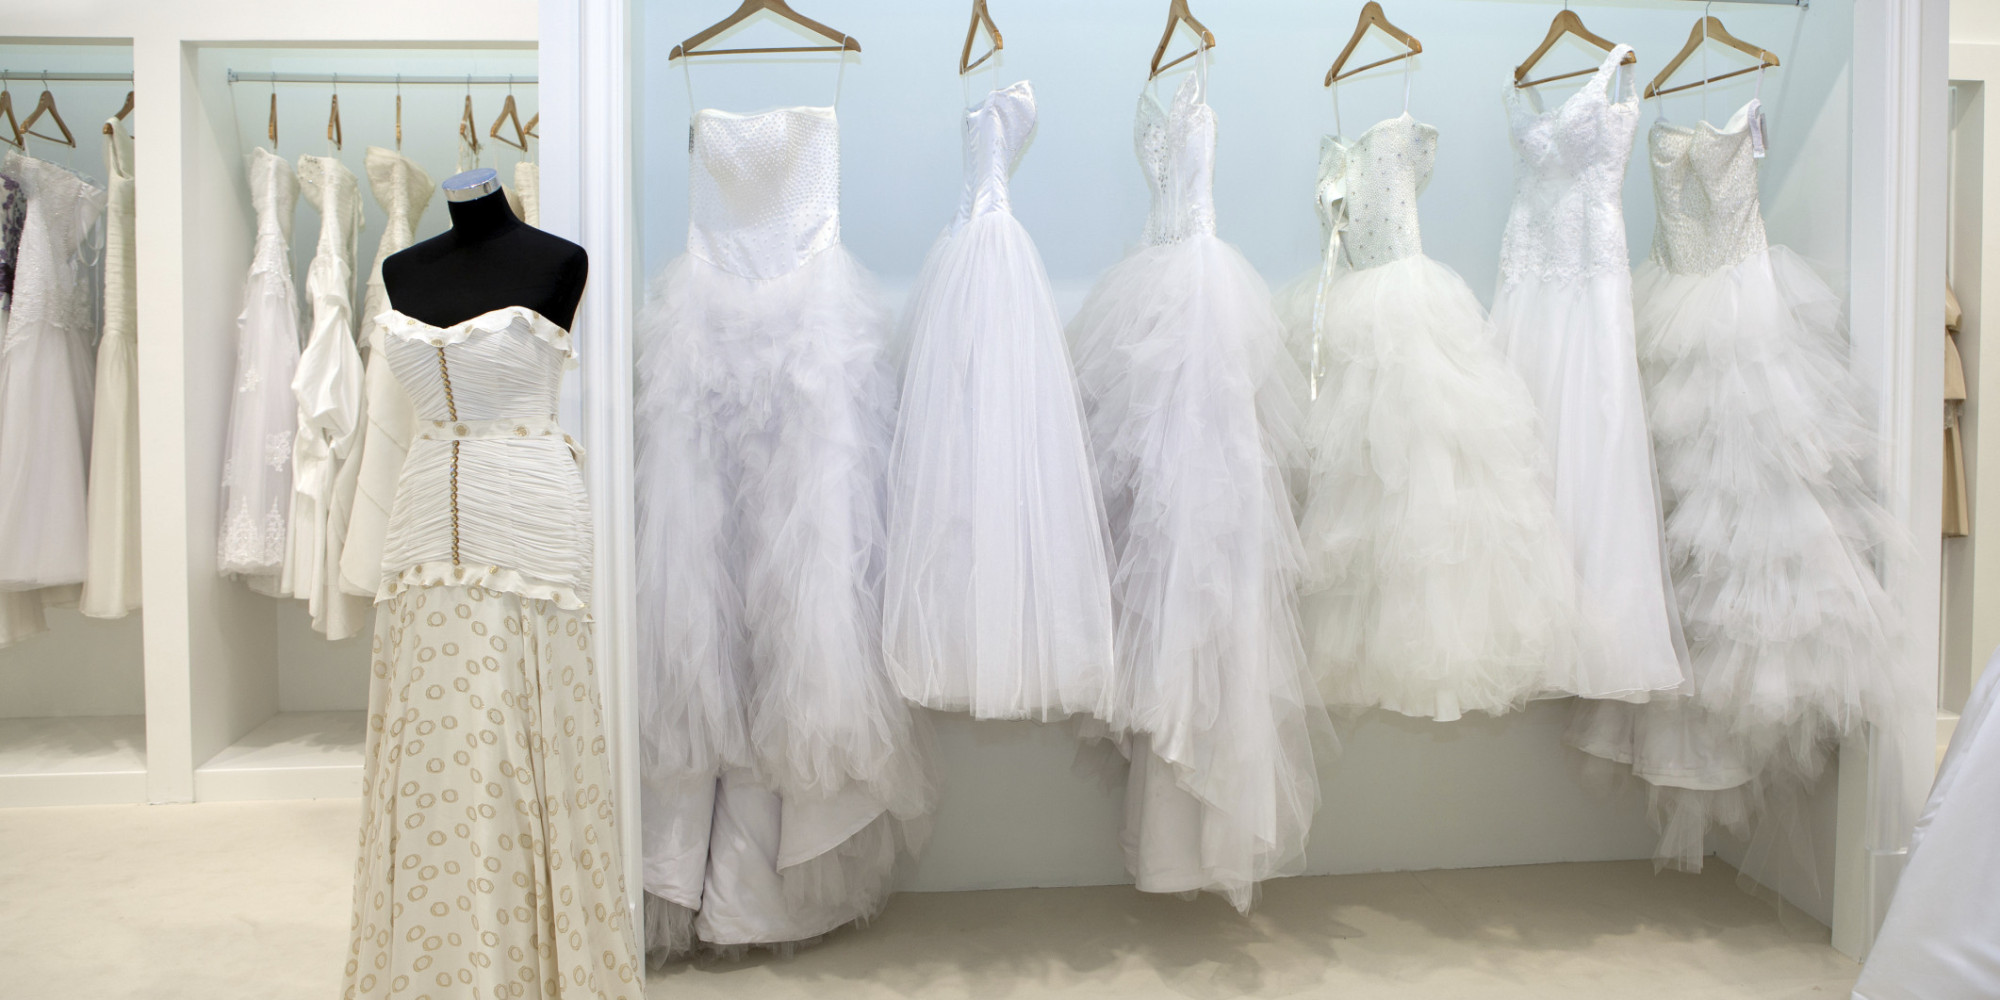 The 5 Biggest Mistakes Brides Make When Shopping For A Wedding Dress  (VIDEO) | HuffPost